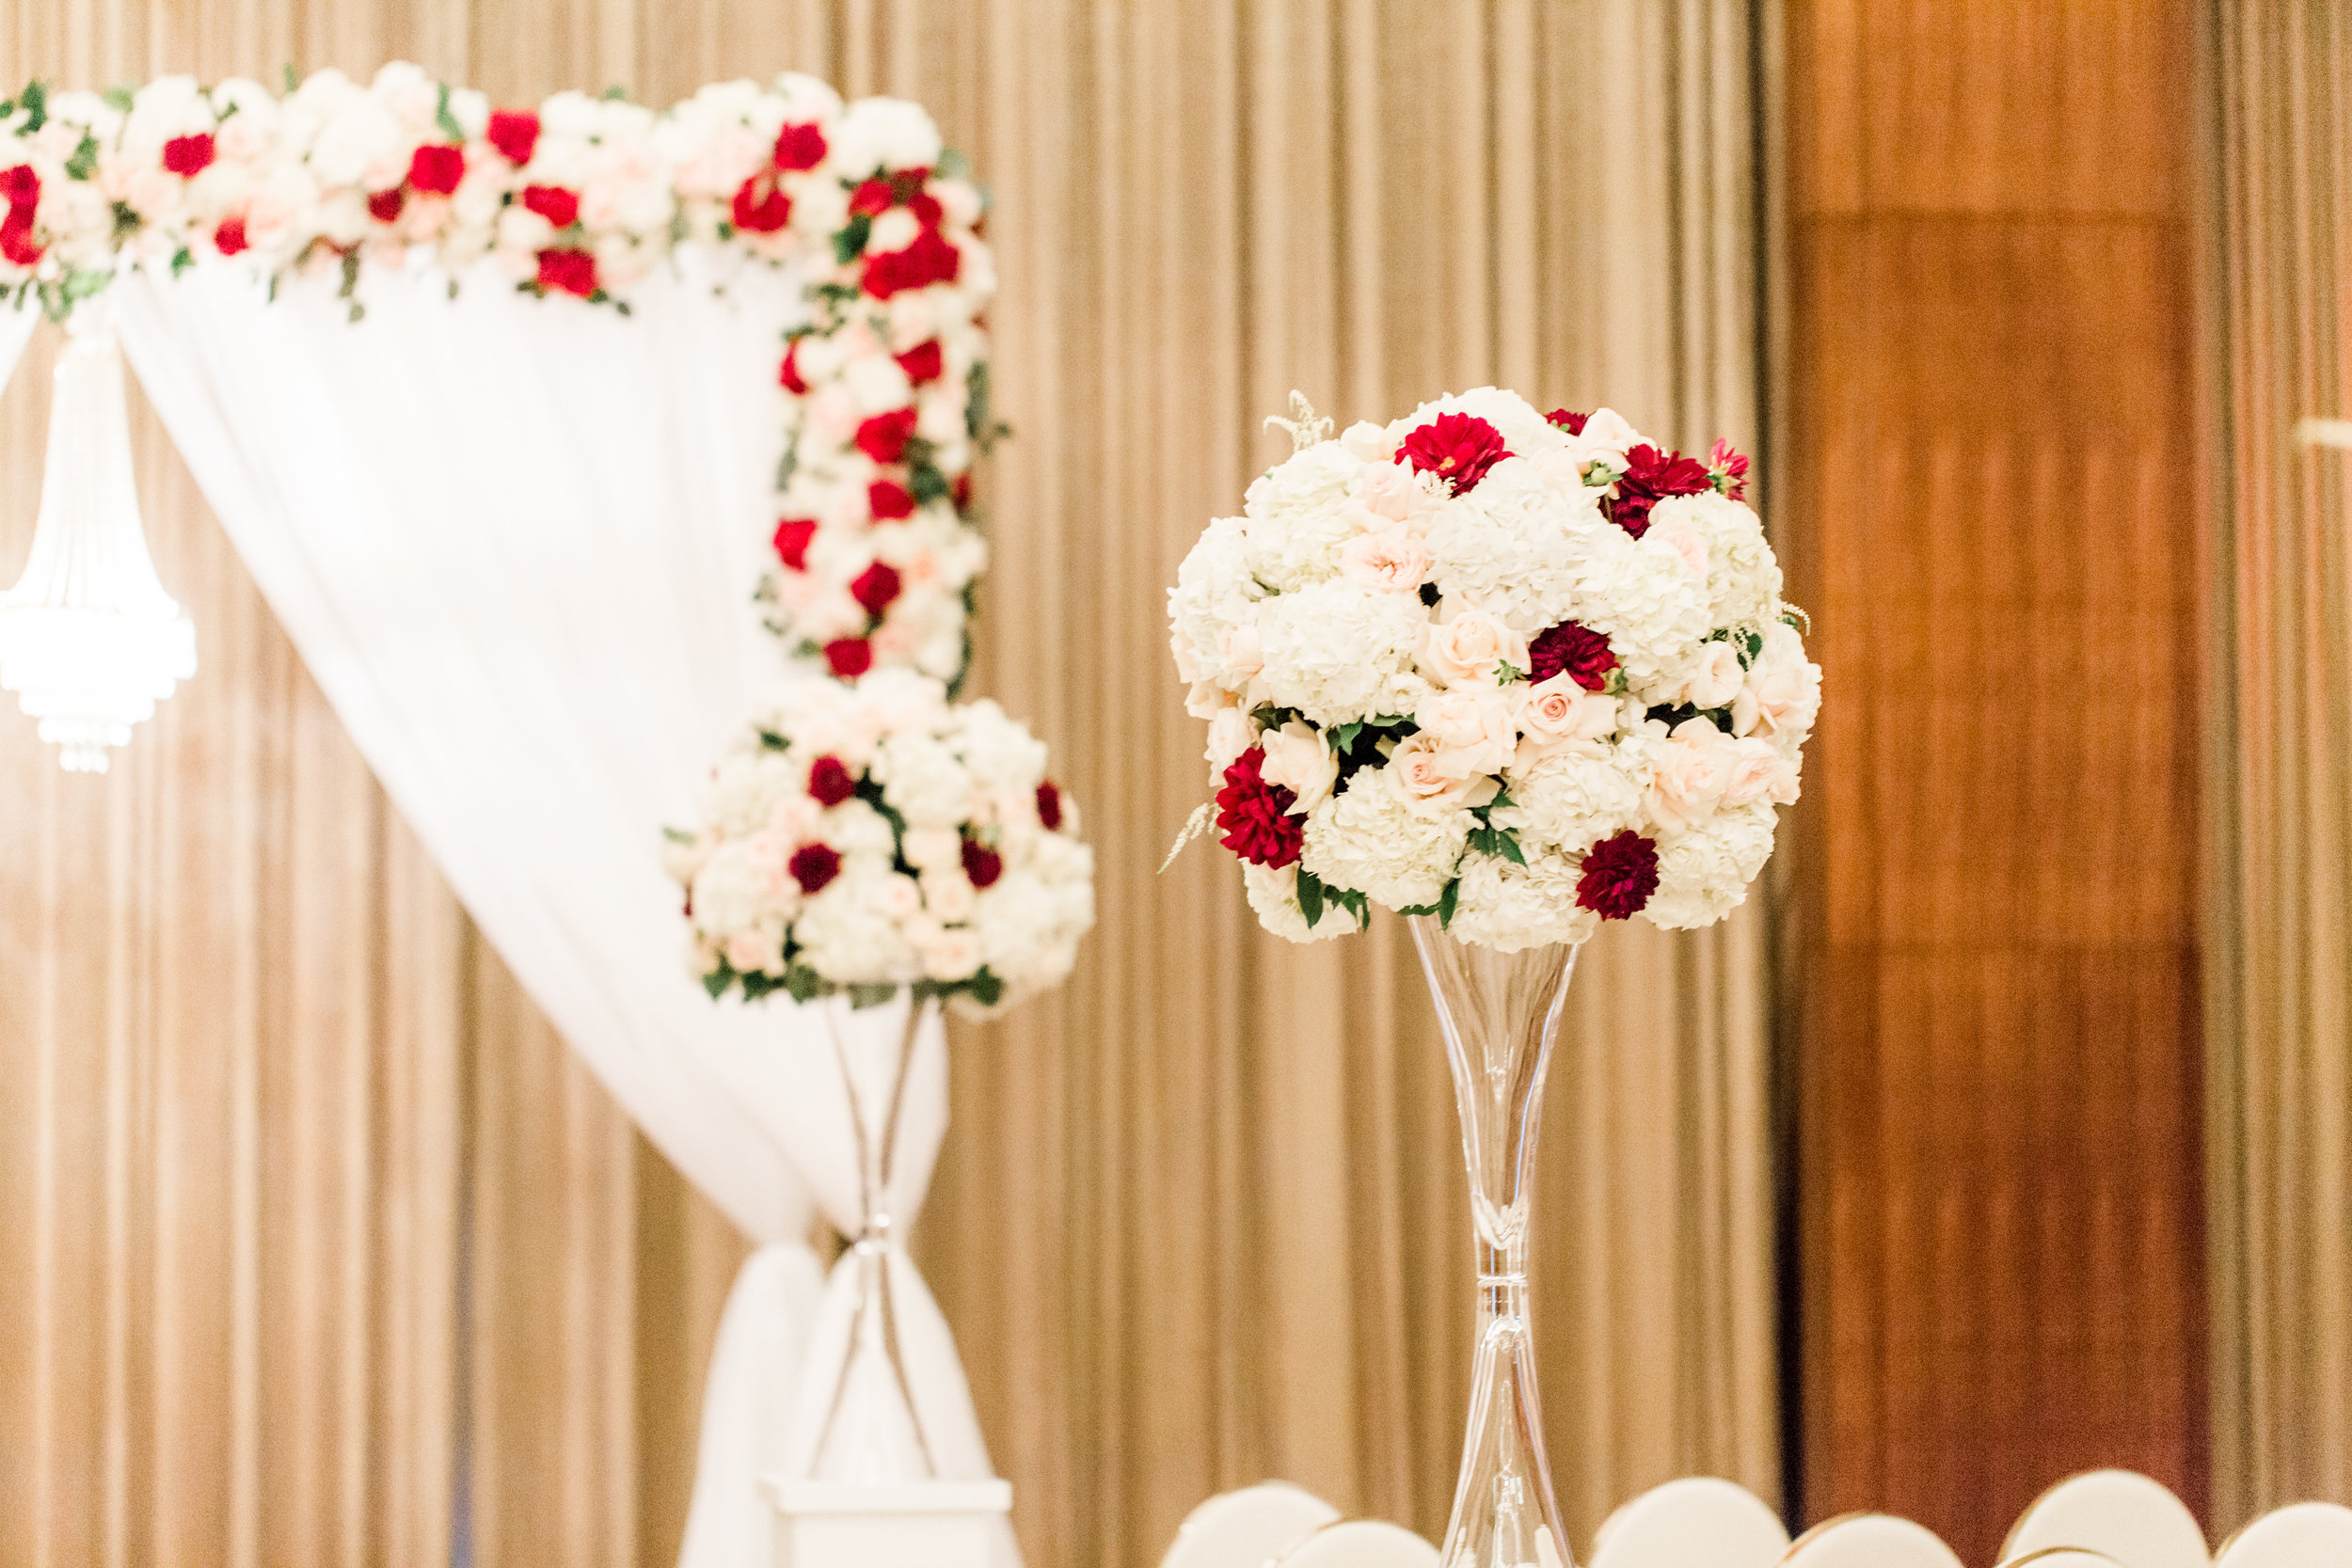 Pink and white with pops of red wedding flowers.Luxury wedding at the Mandarin Oriental with a color scheme of white, blush, and pops of wine red produced by Las Vegas Wedding Planner Andrea Eppolito with photos by Stephen Salazar Photography.